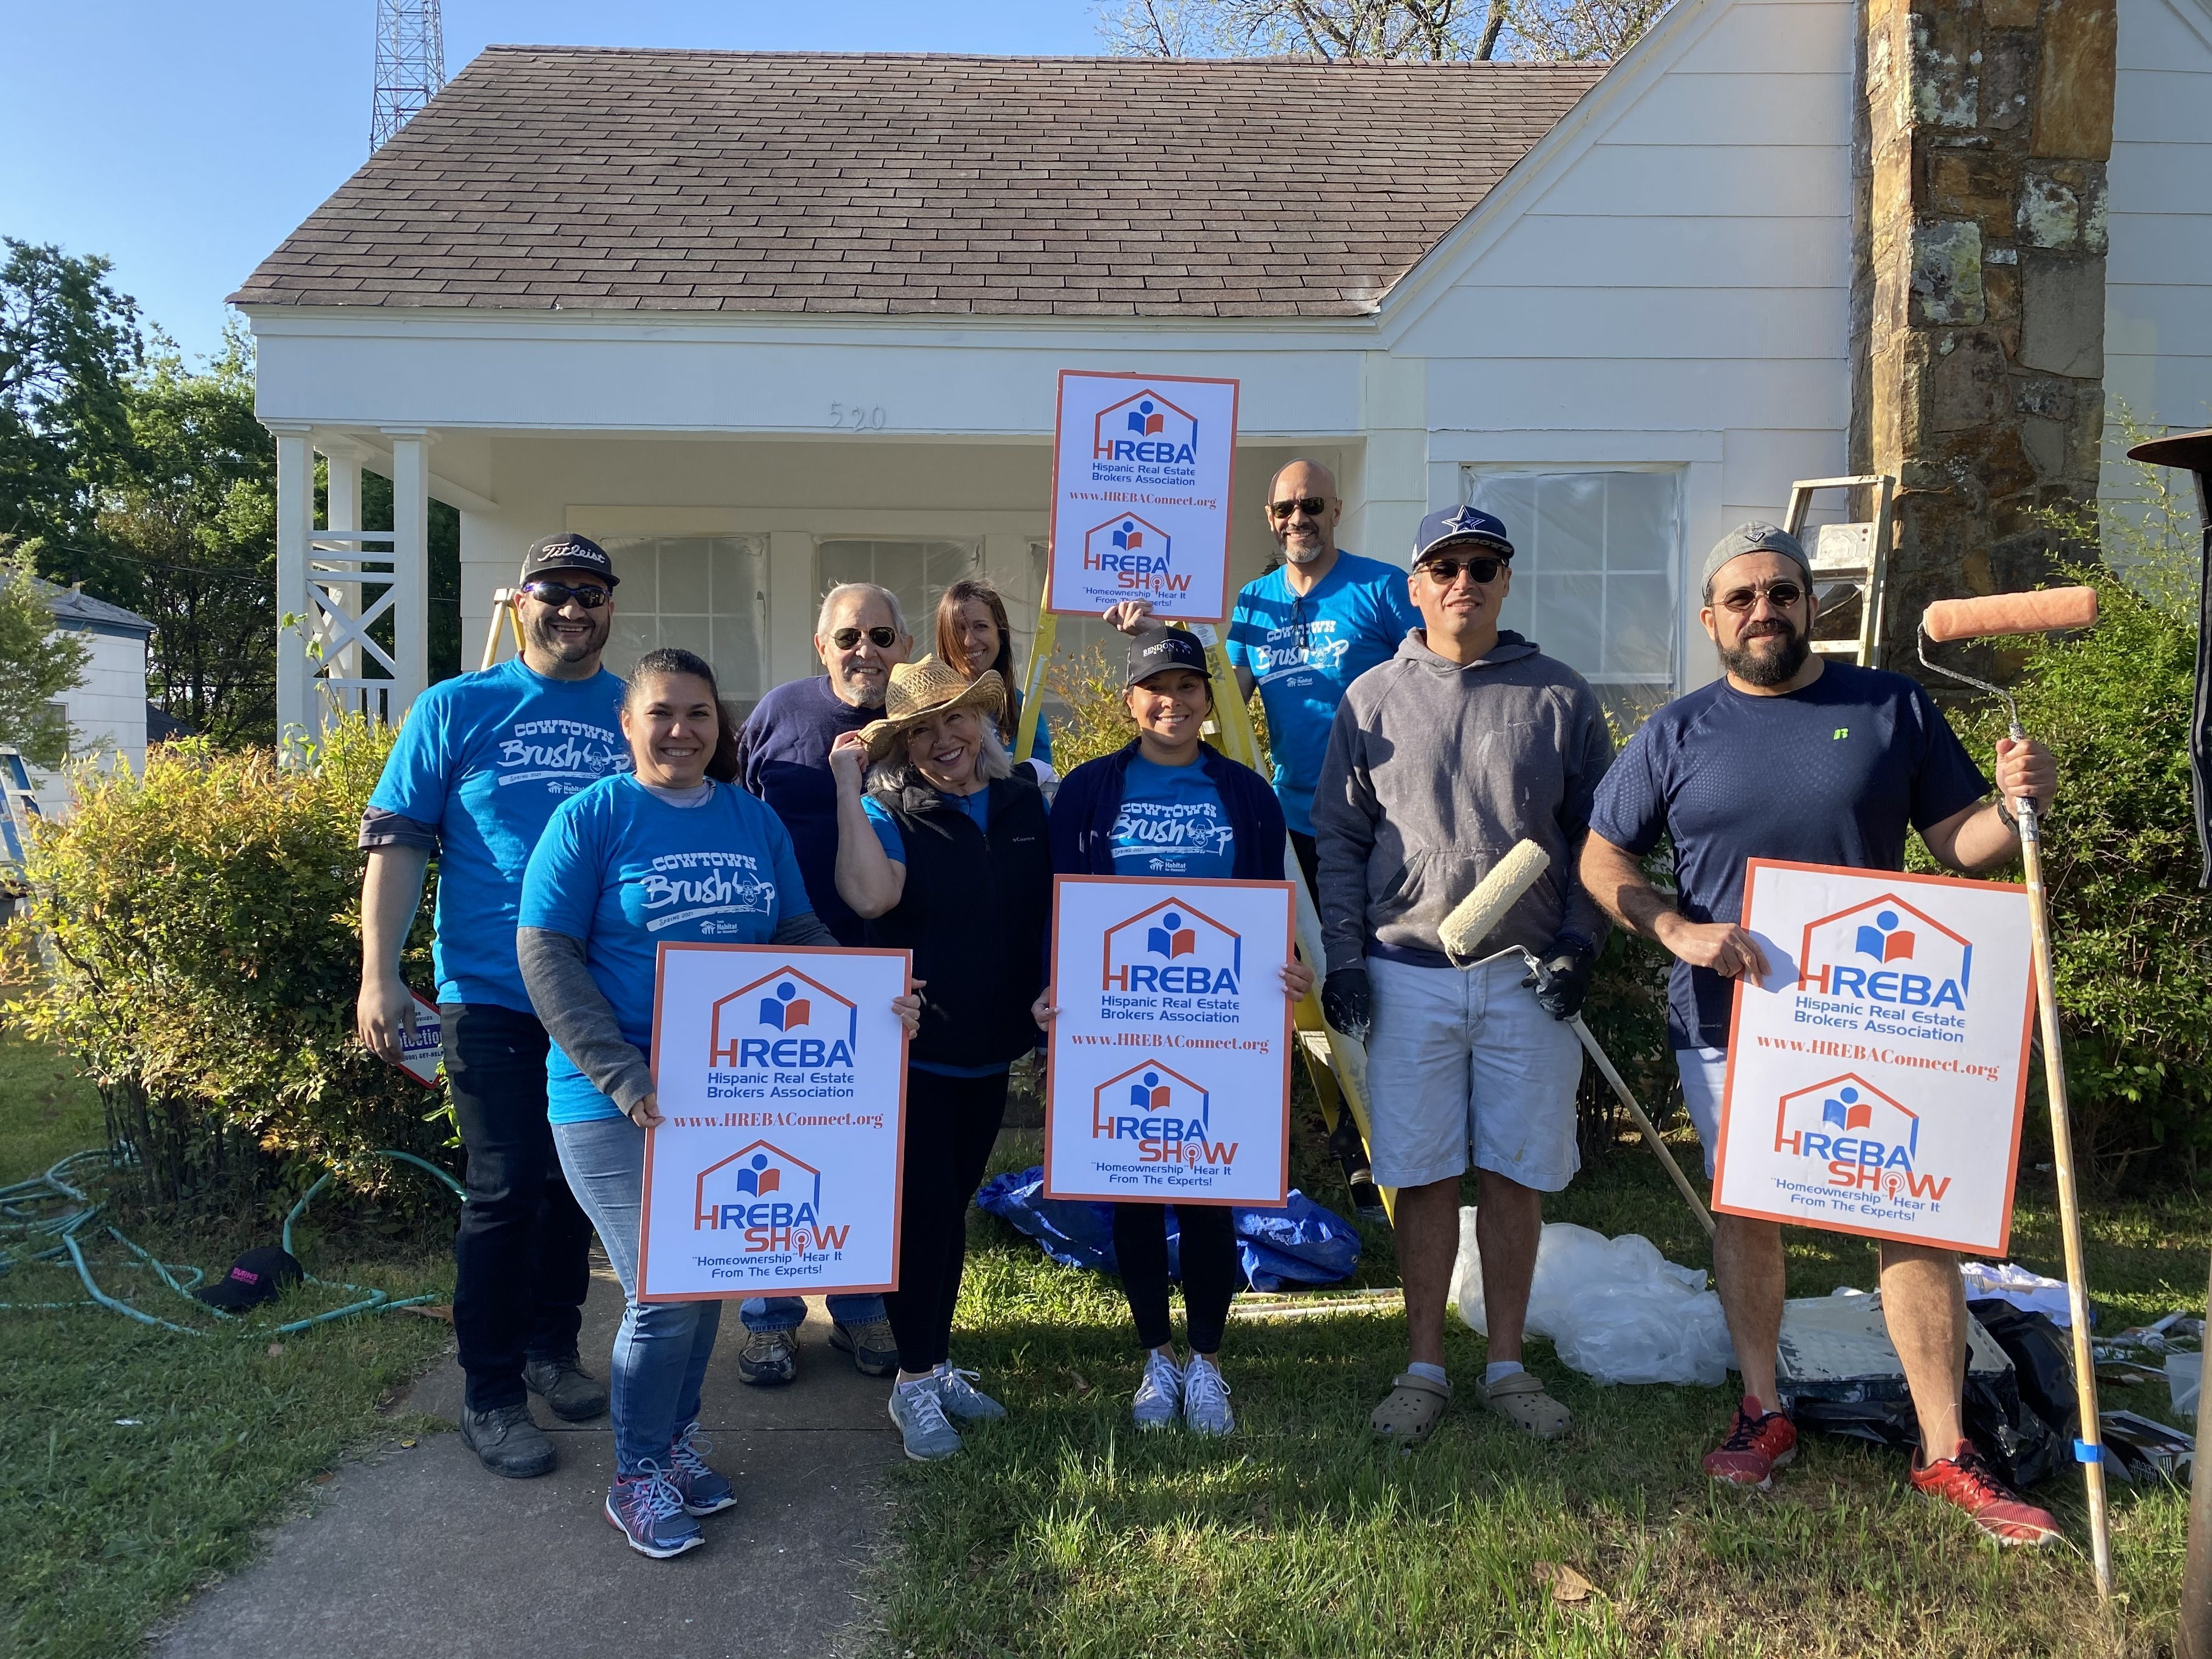 Cowtown Brush-up April 10, 2021